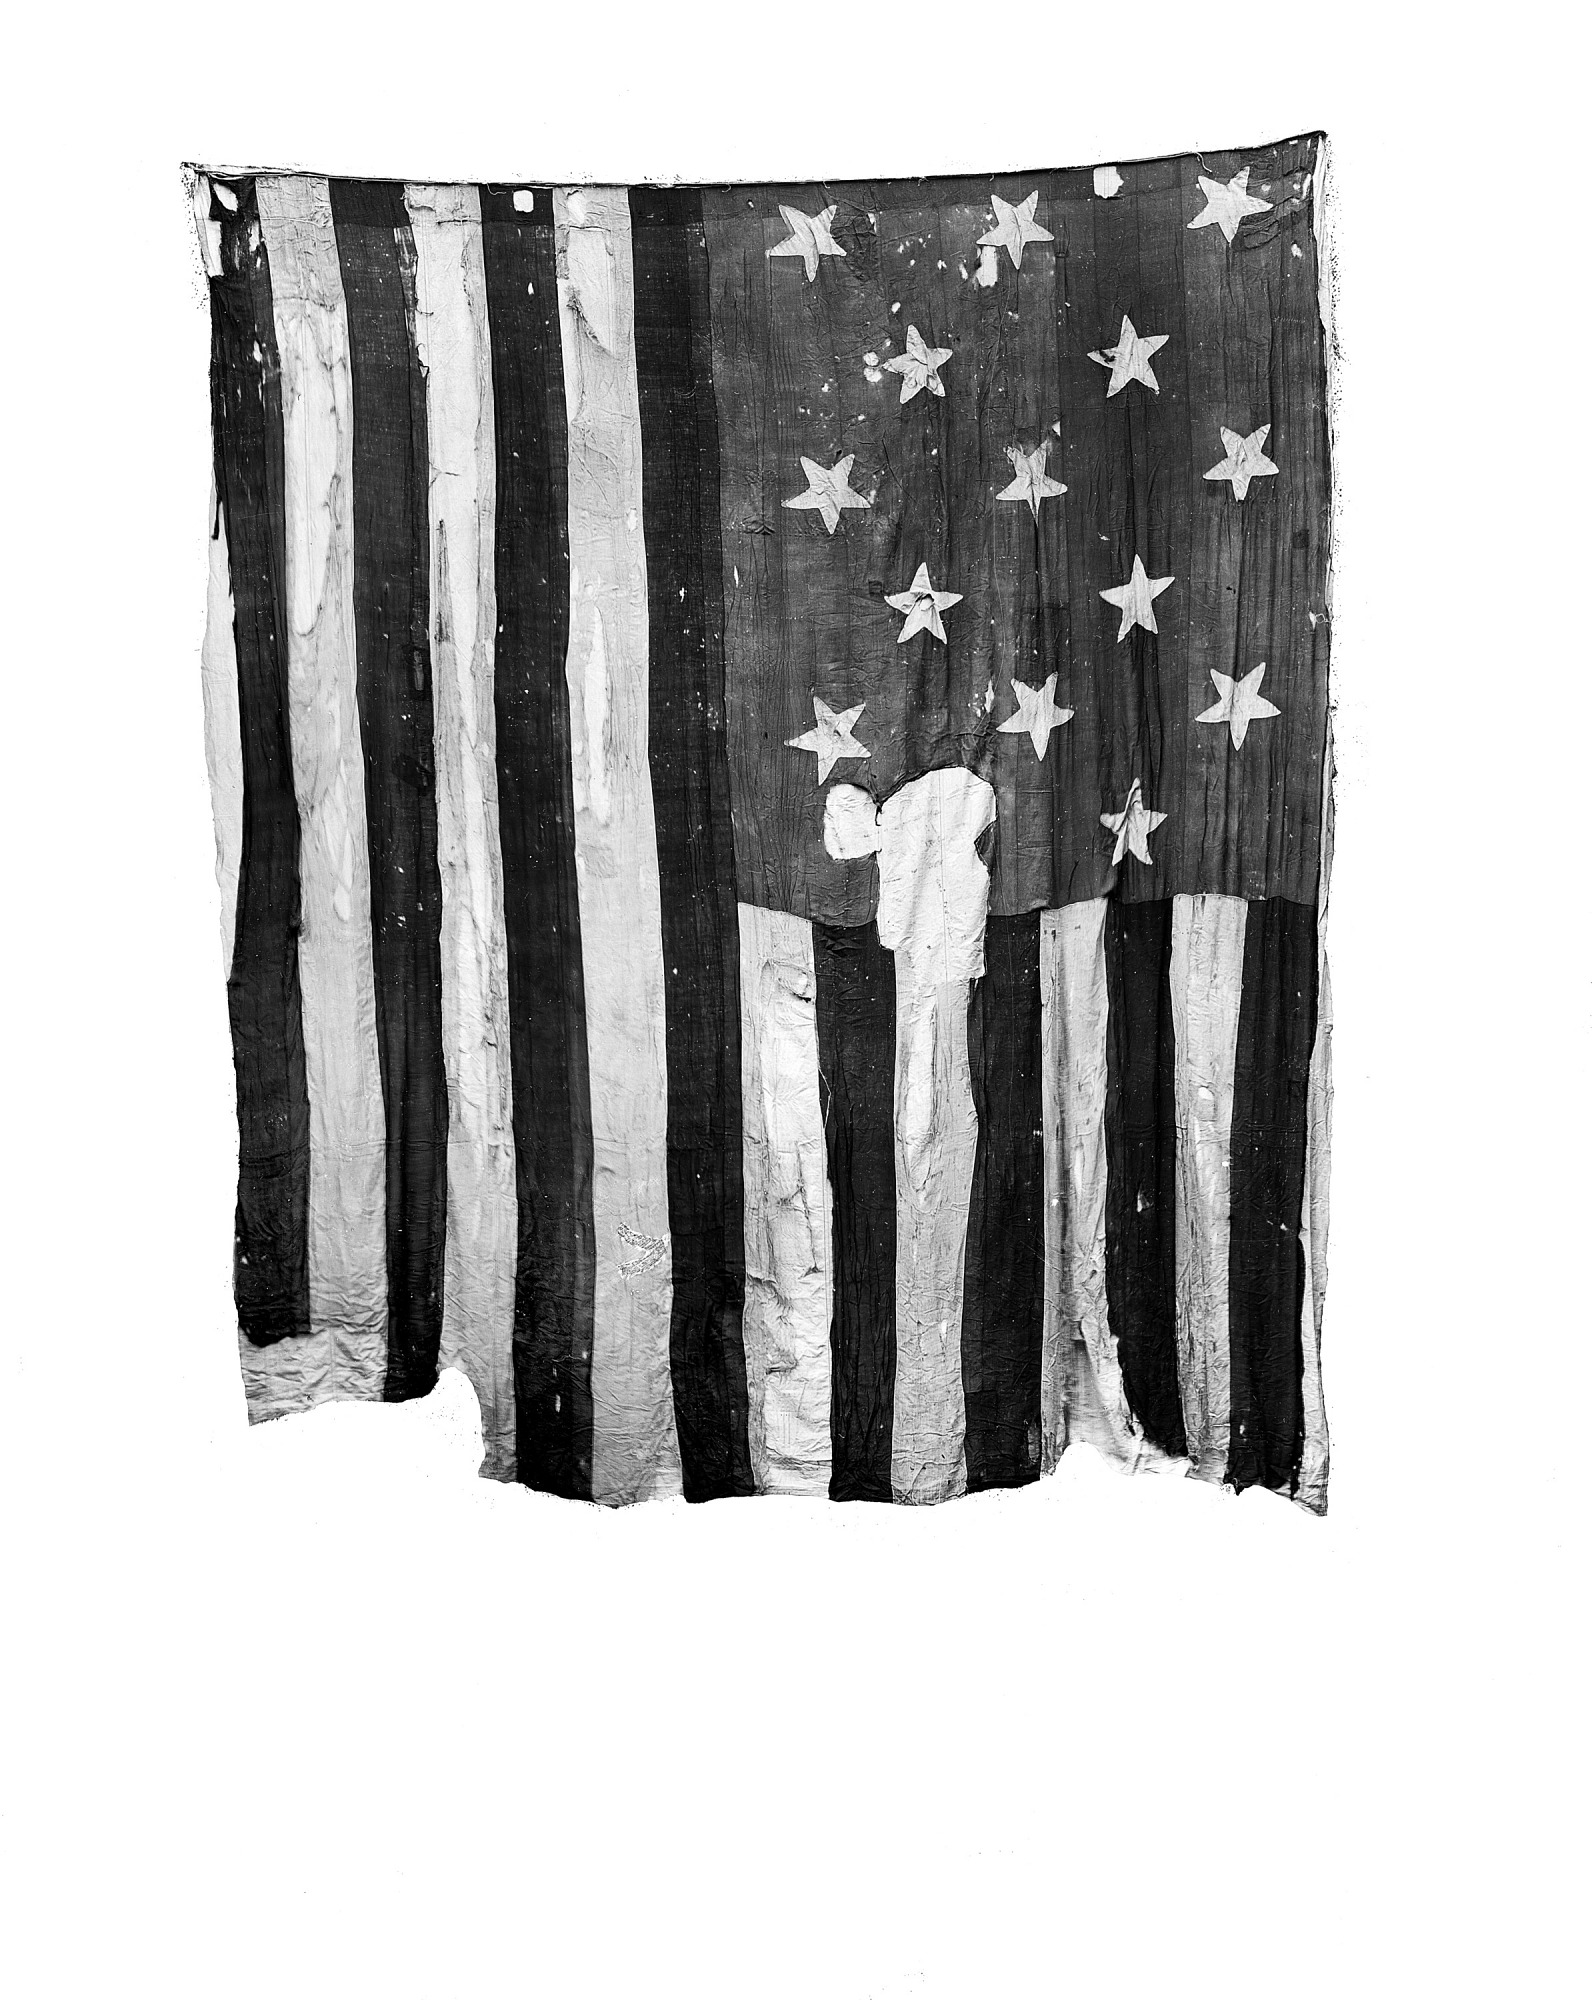 Star-Spangled Banner, by Unknown, 1907, Smithsonian Archives - History Div, 19703A or MAH-19703A.